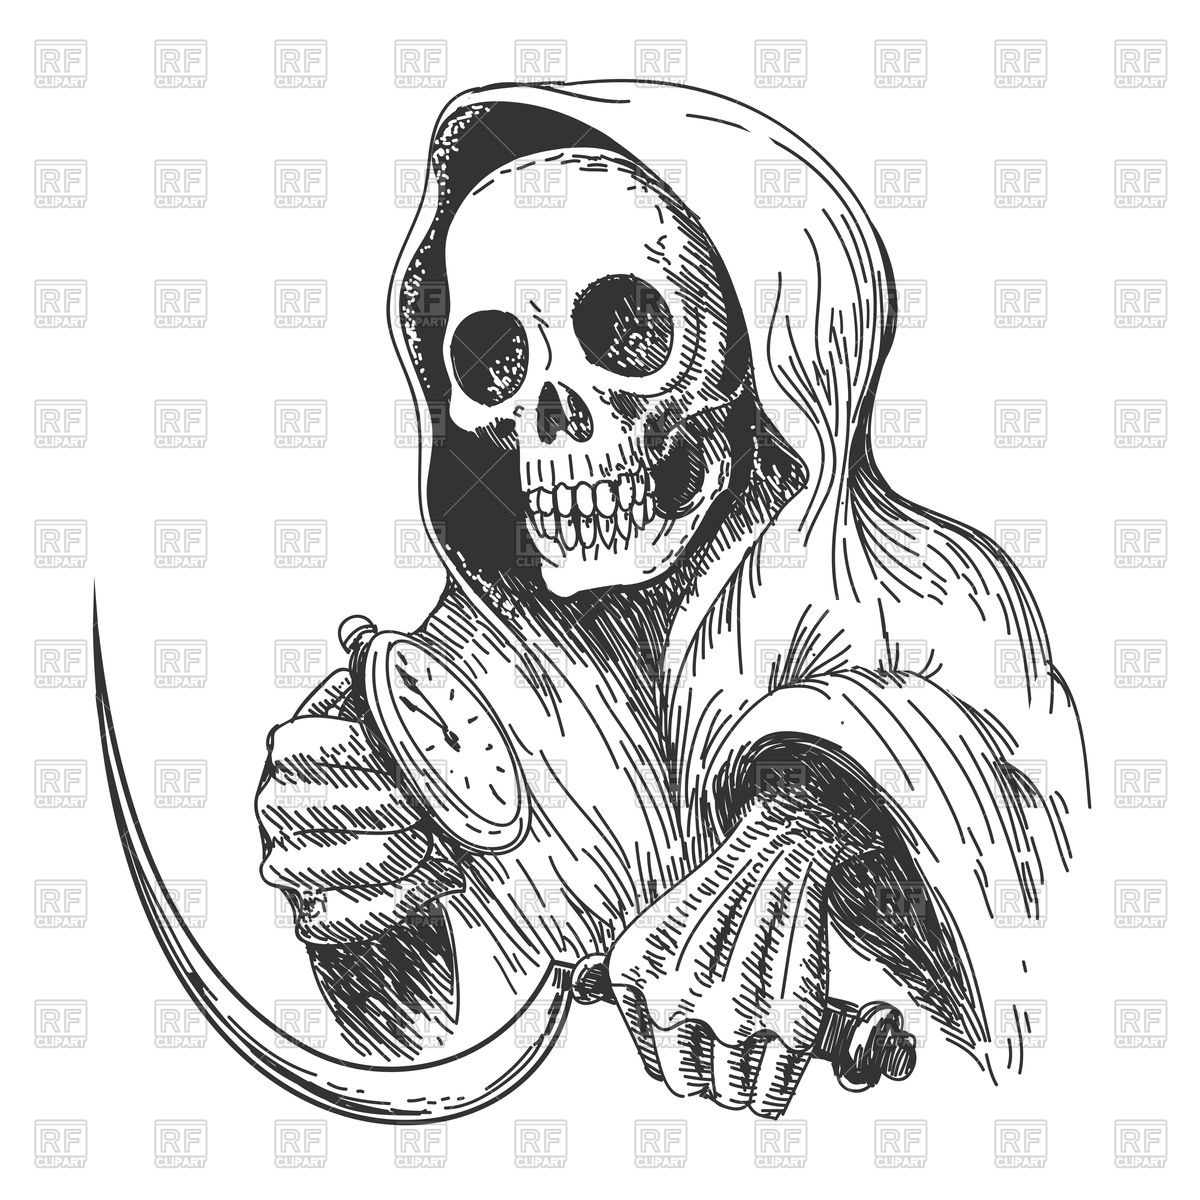 Death with sickle and pocket watch, Ink drawing style Stock Vector Image.